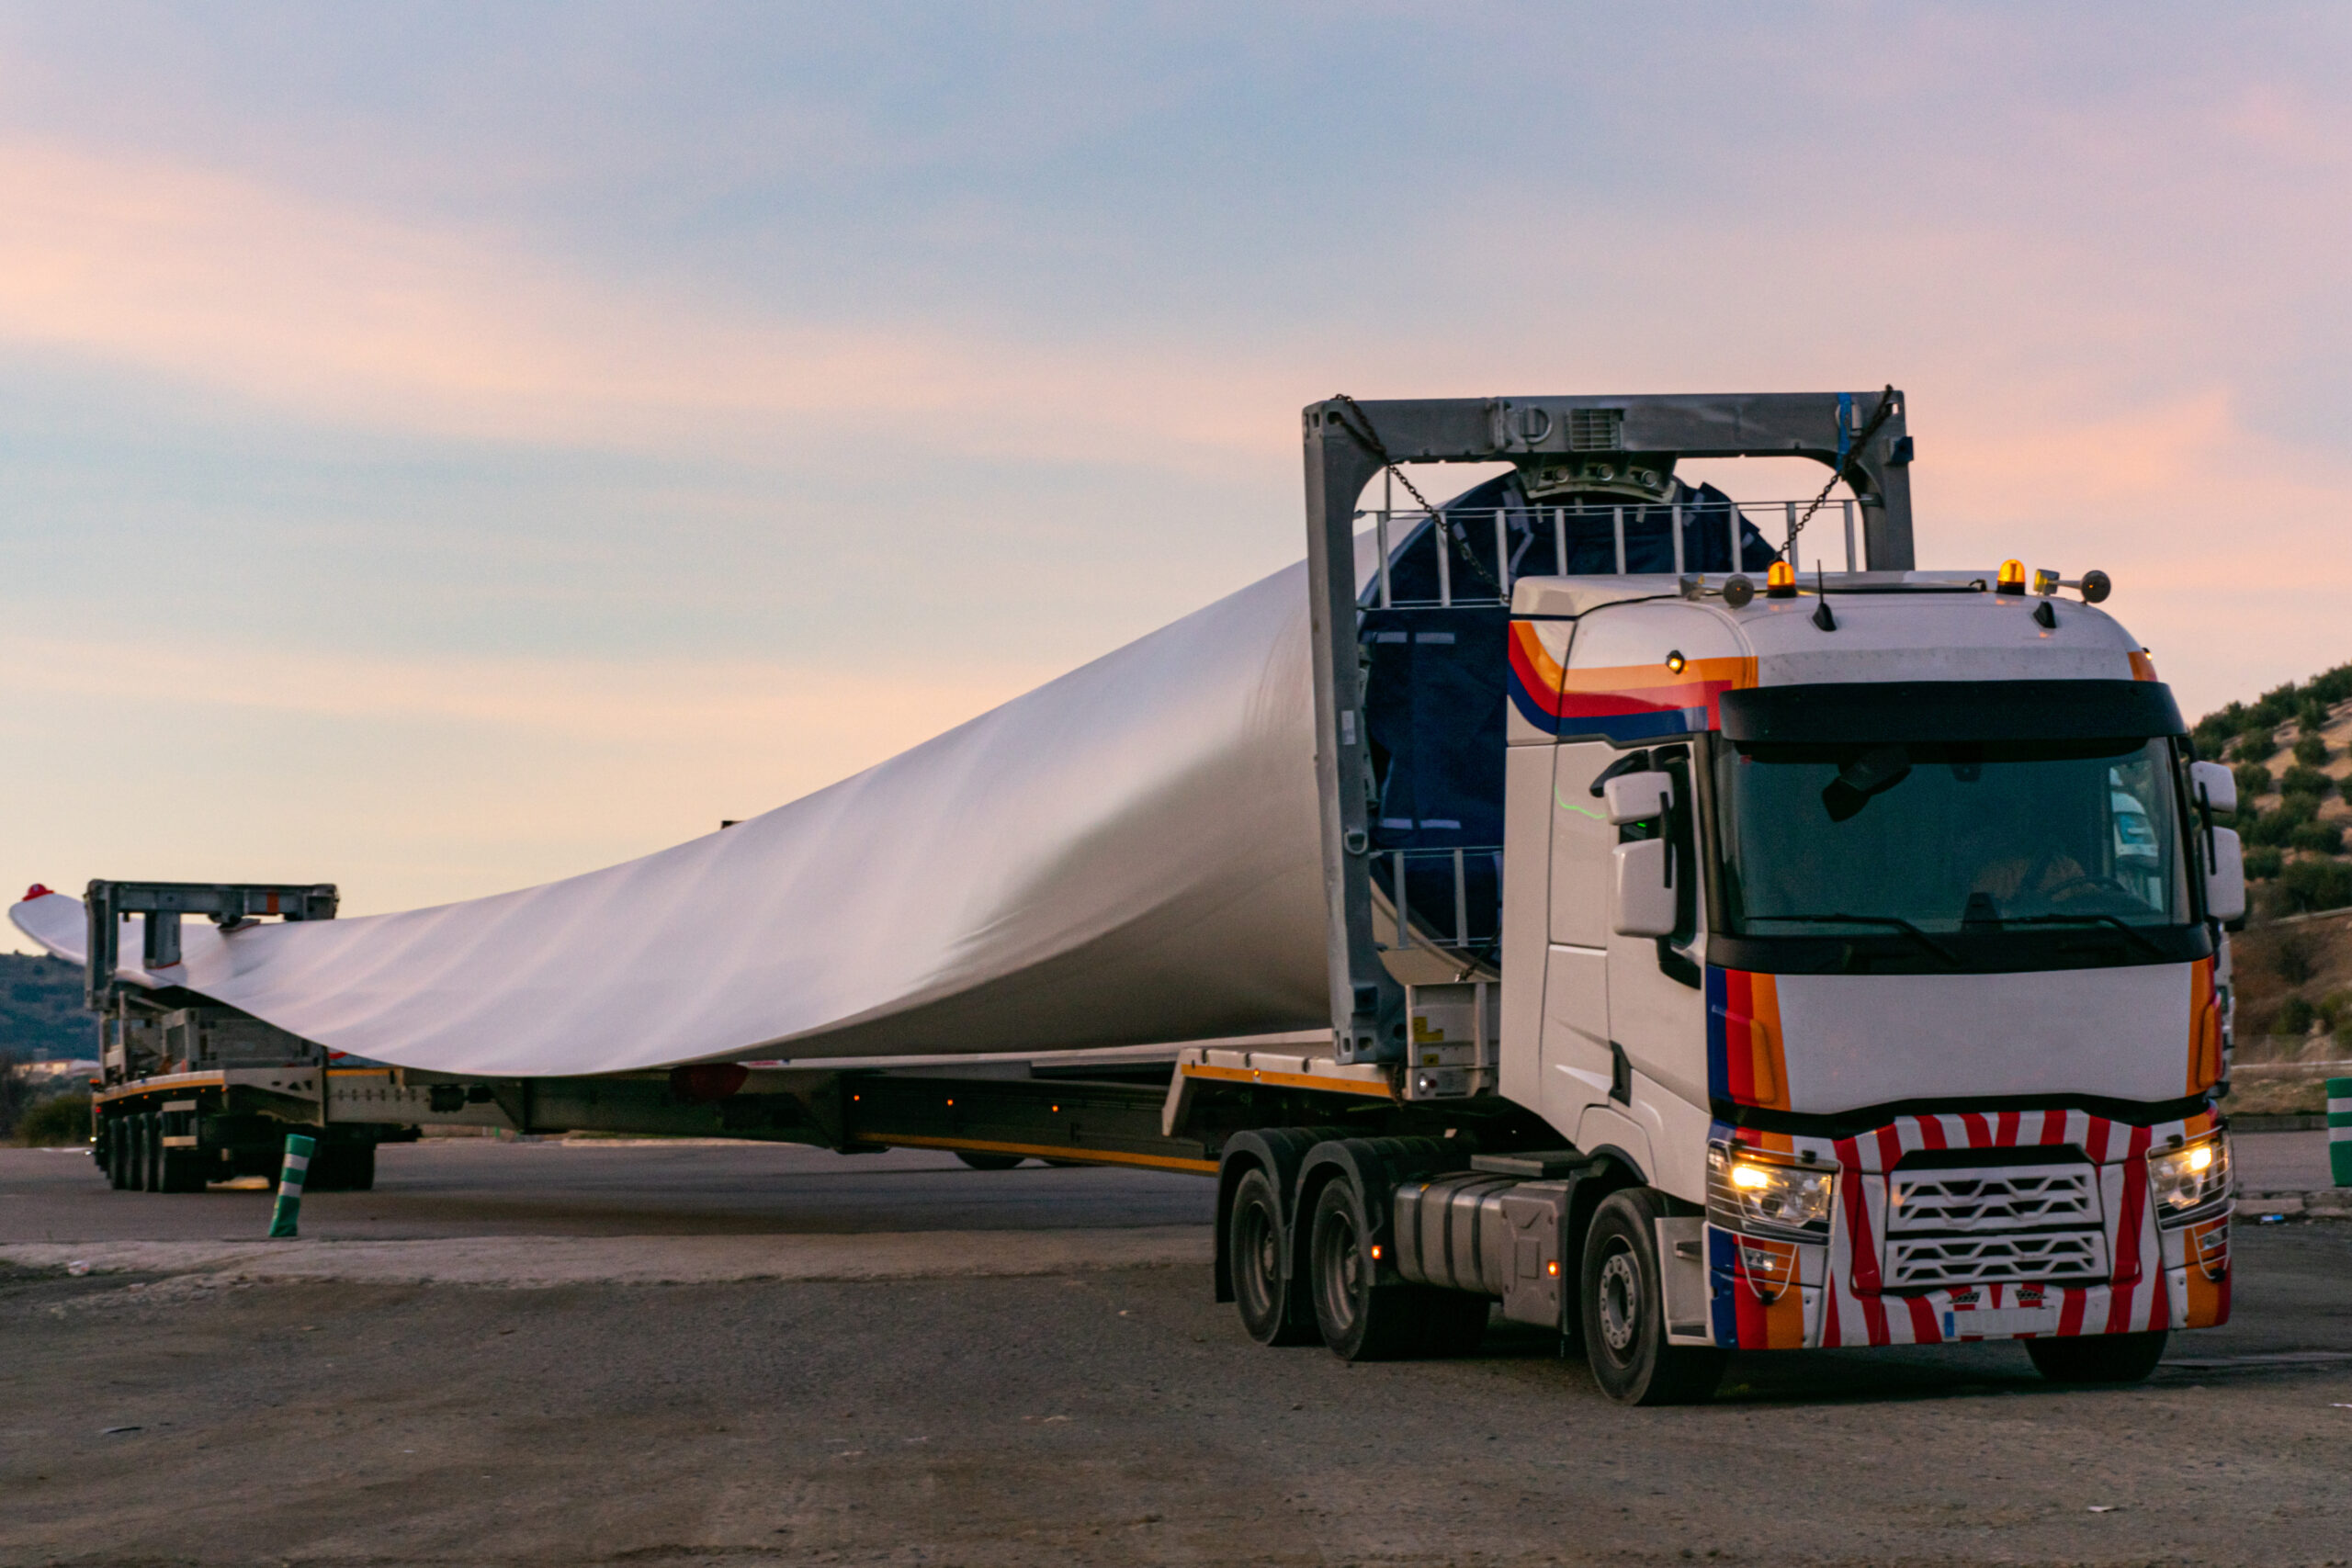 Wind turbine blades to be used in reinforced concrete for HS2